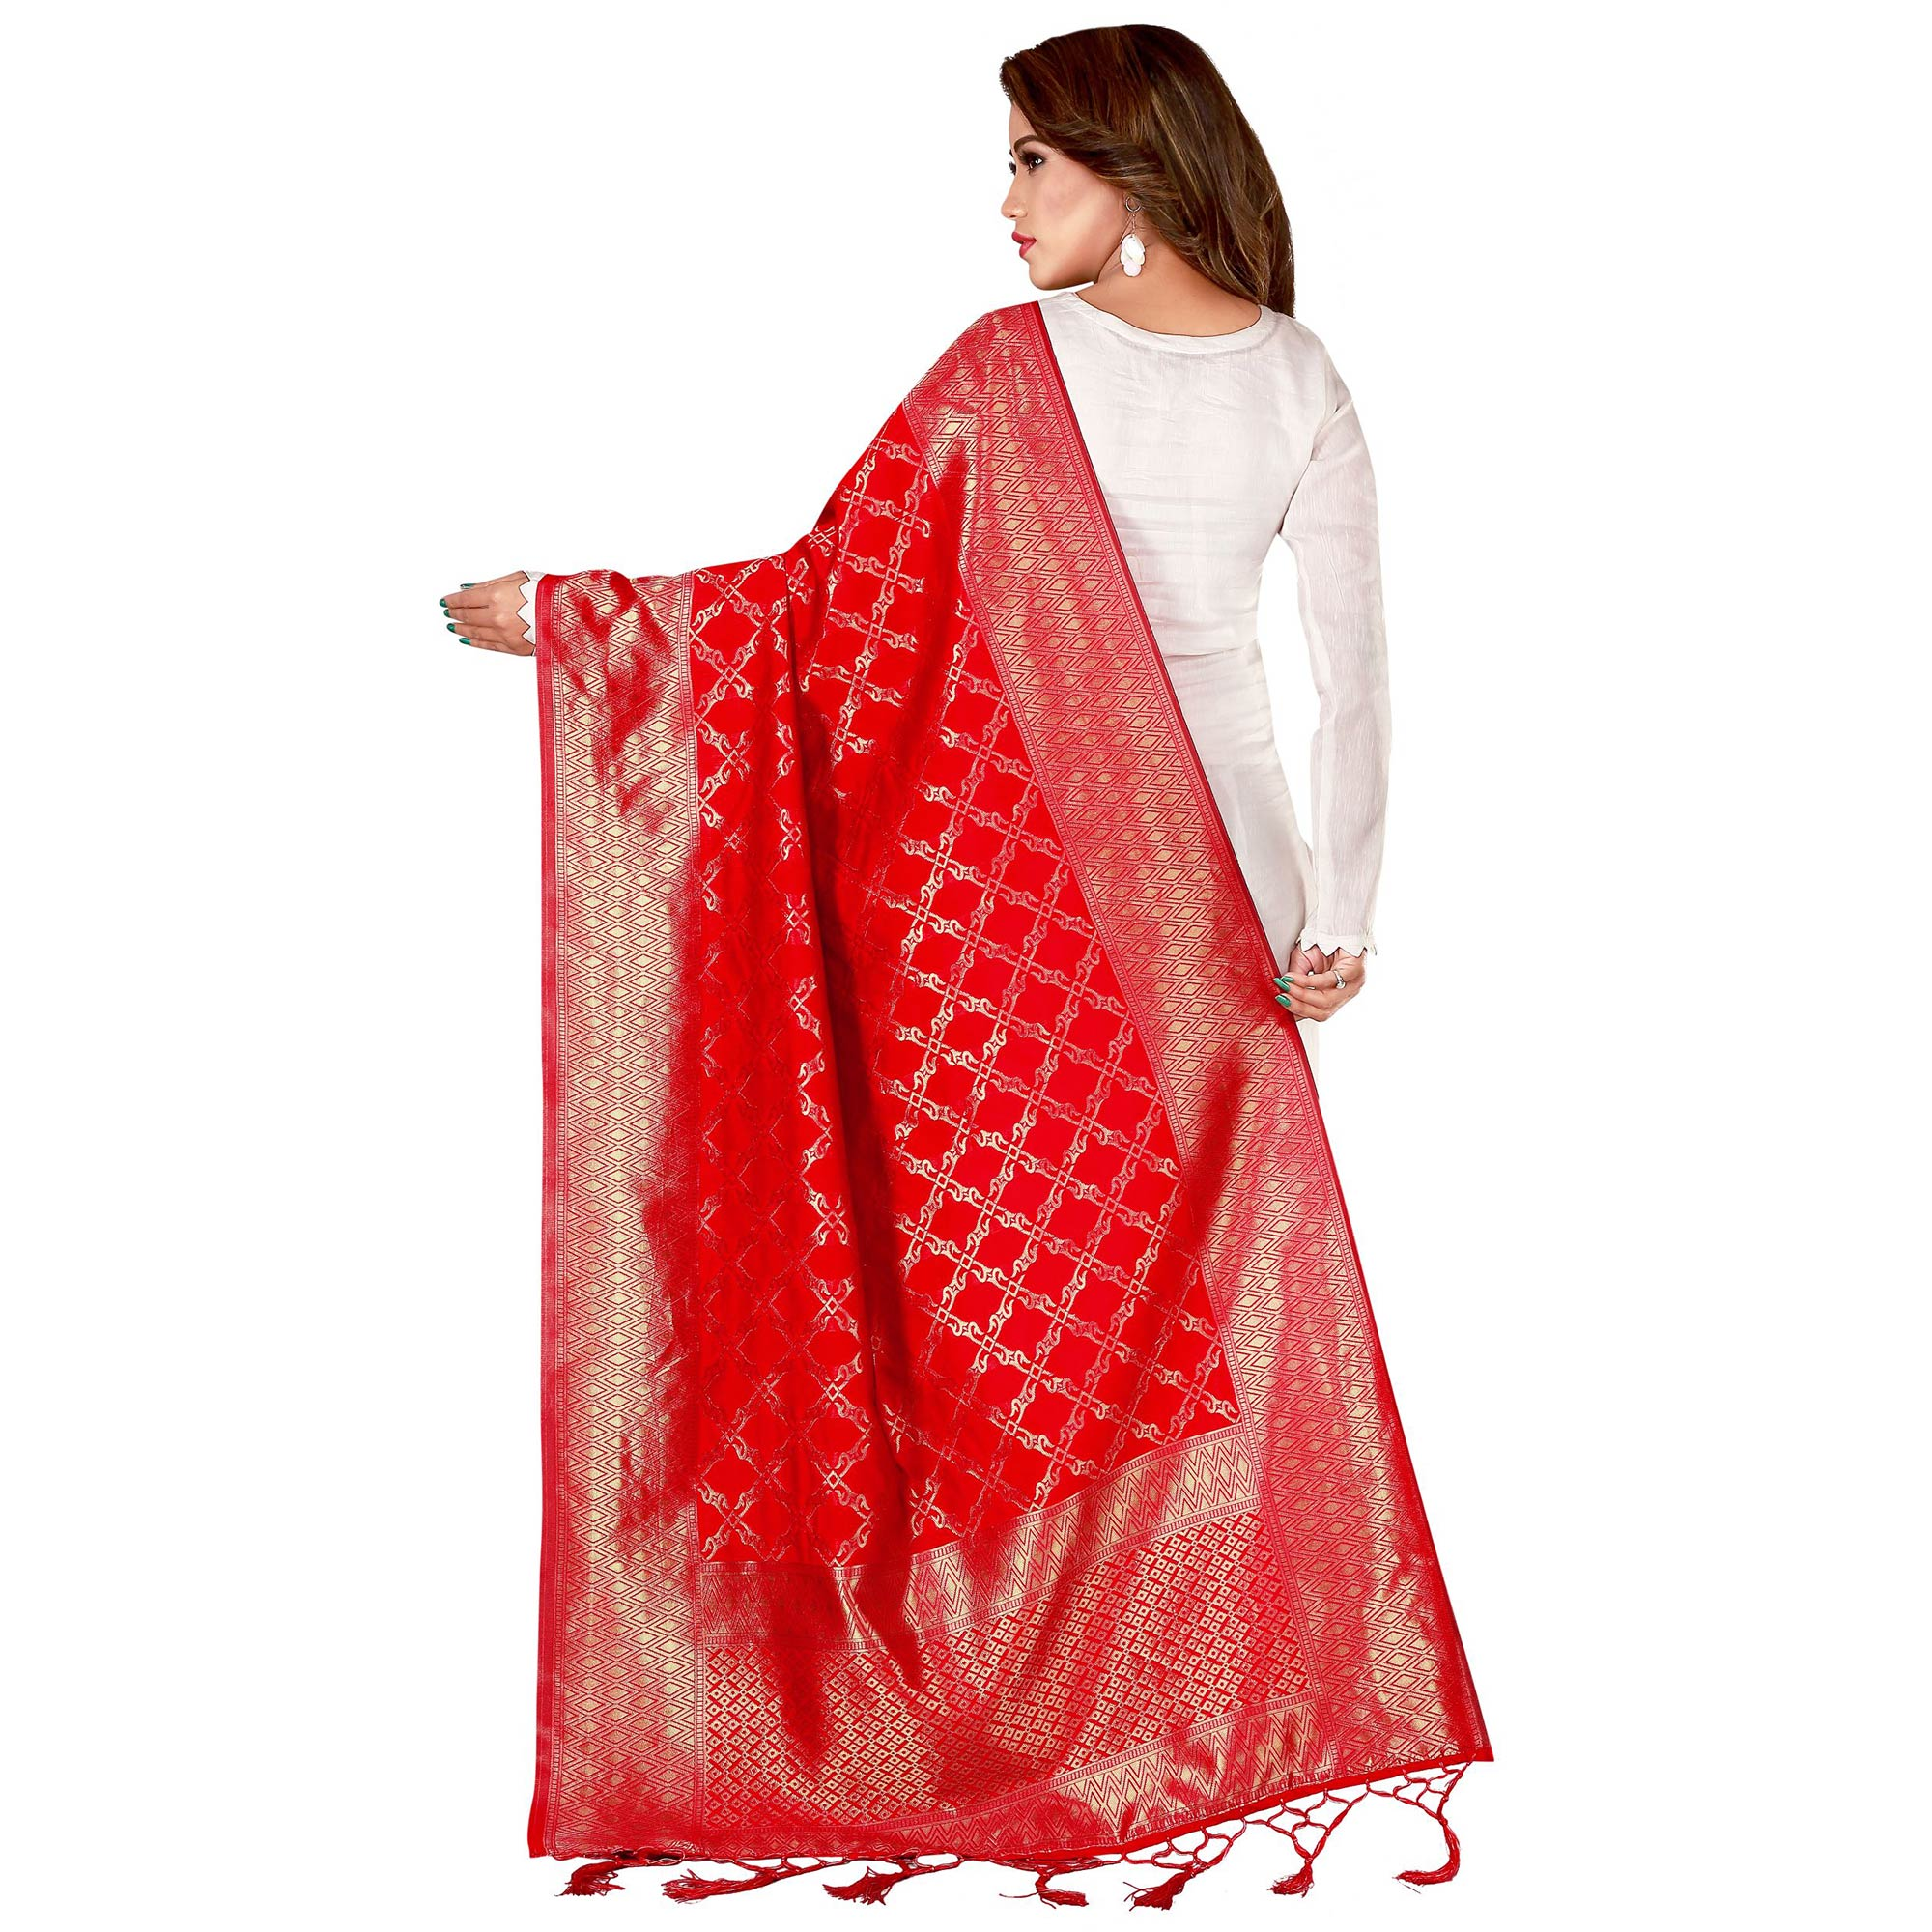 Amazing Red Colored Festive Wear Banarasi Silk Dupatta